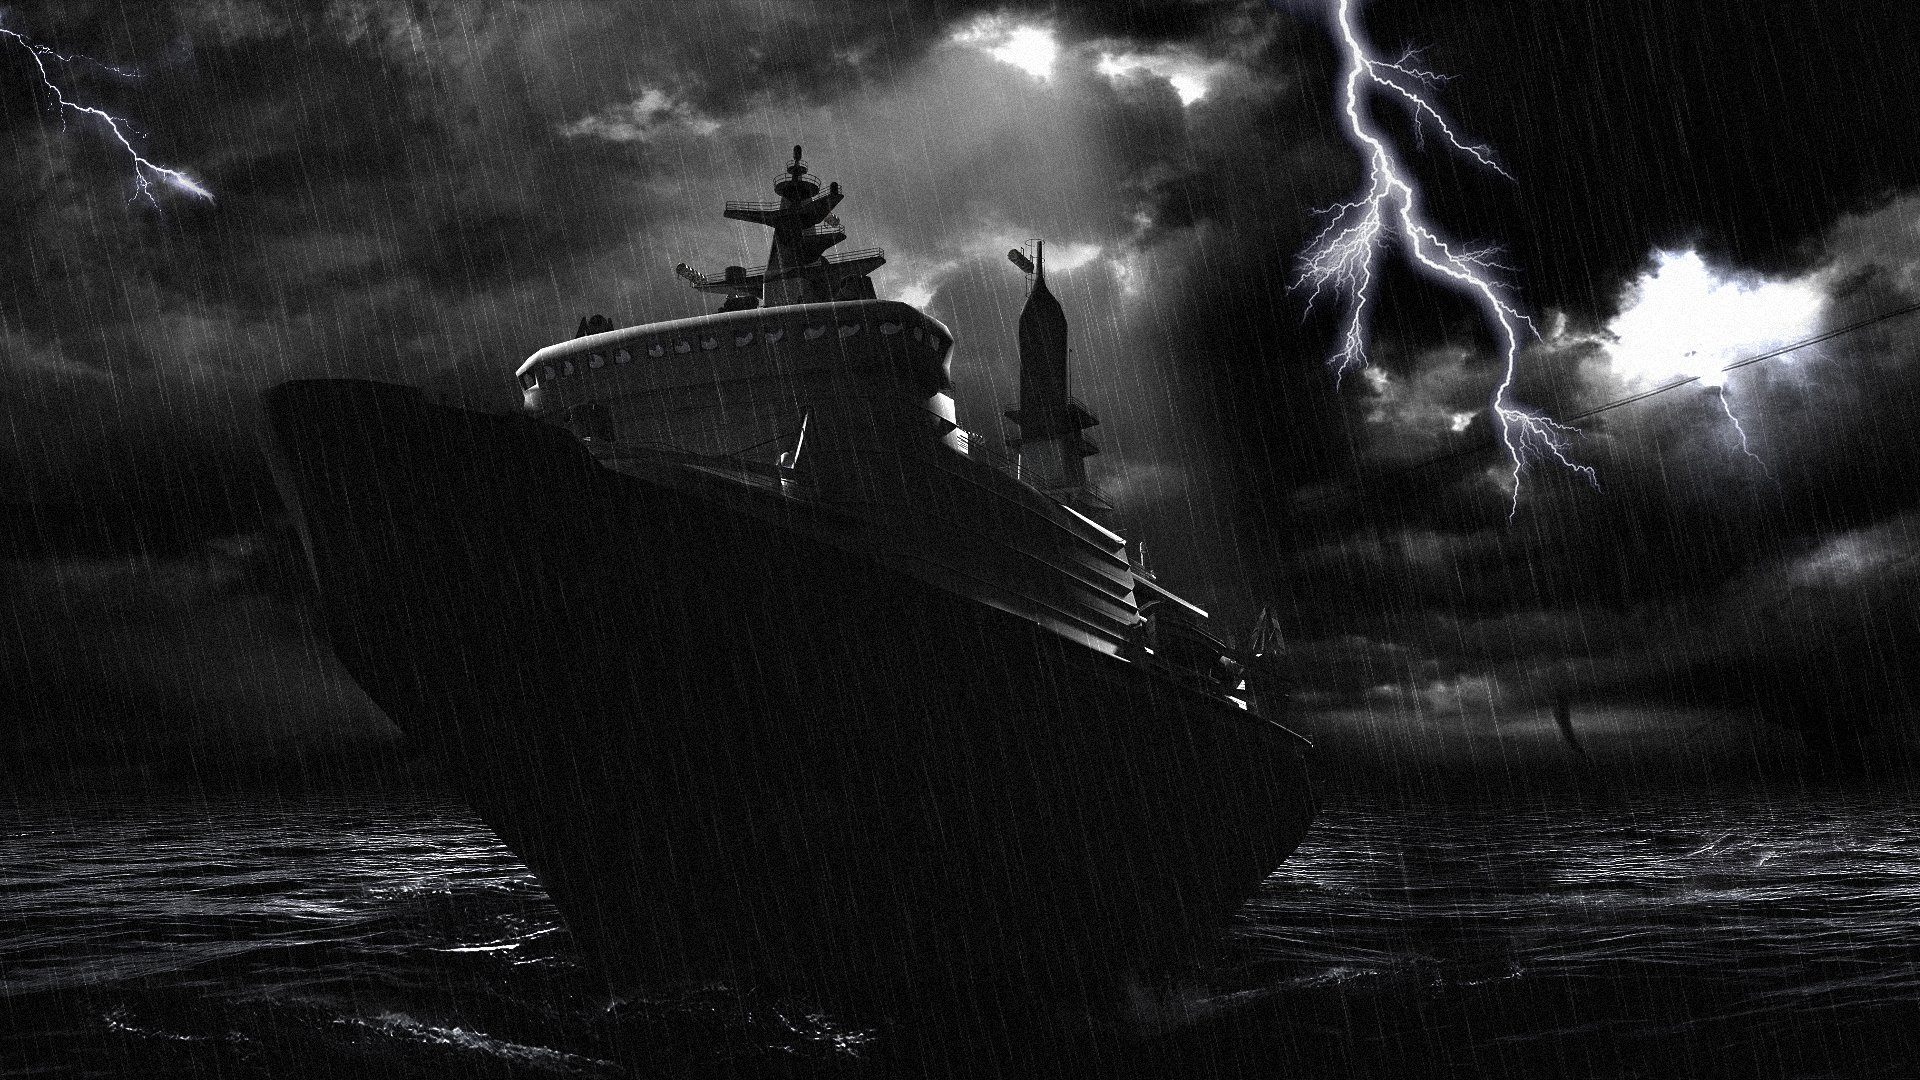 ship storm full hd wallpaper and background | 1920x1080 | id:410703